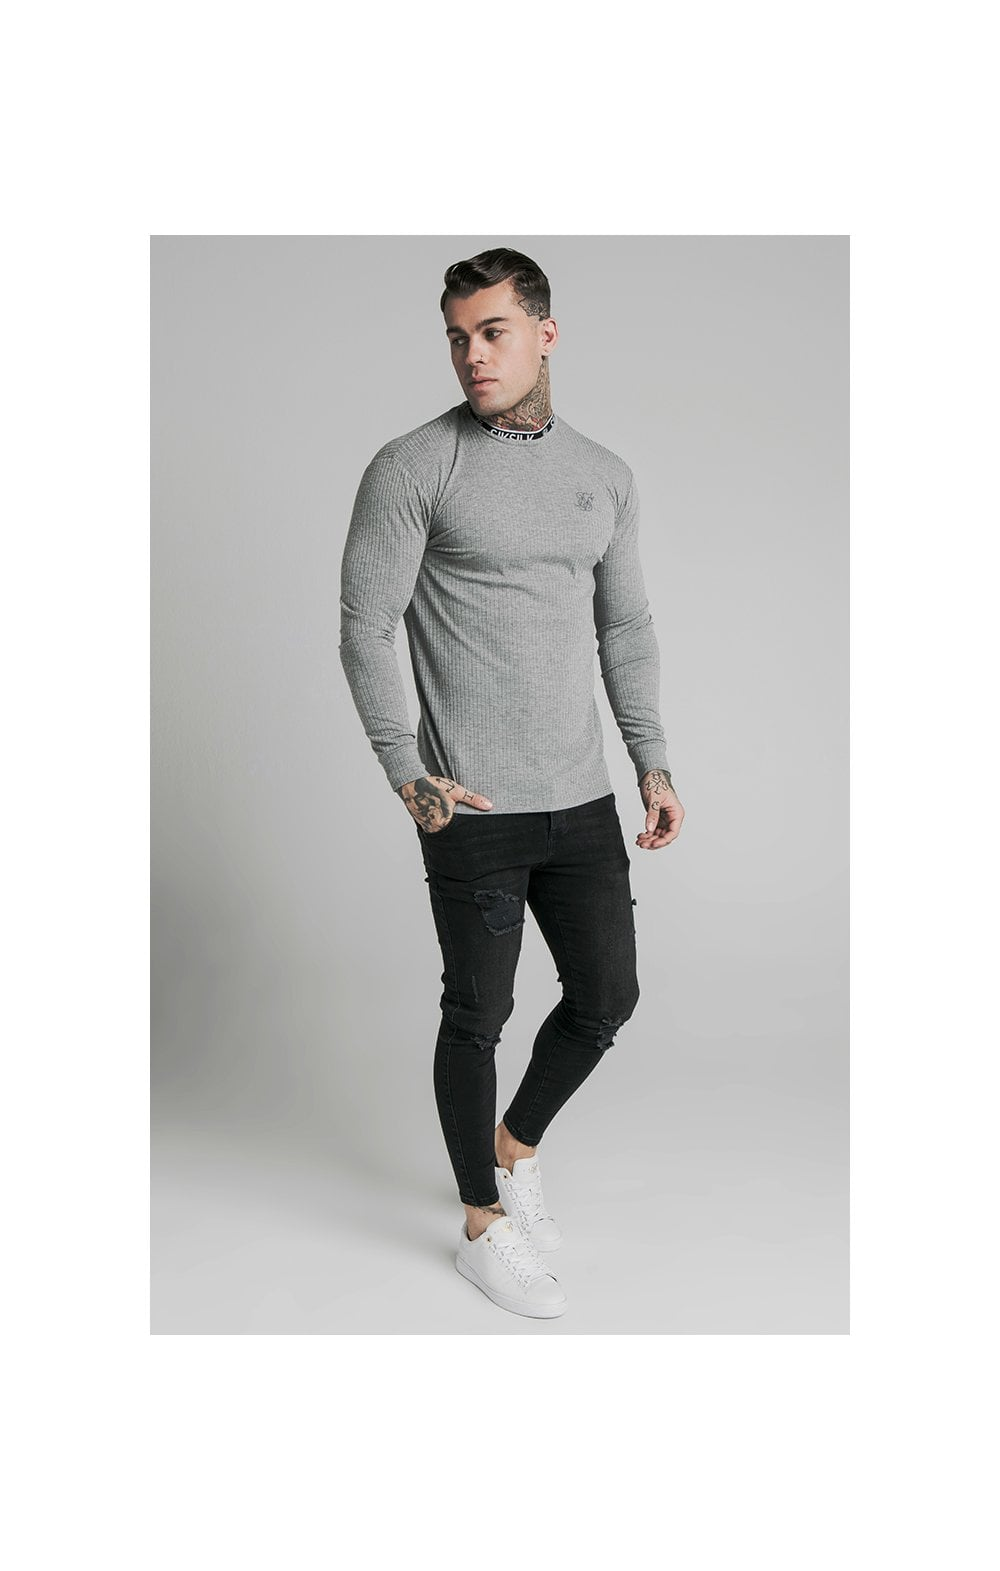 Load image into Gallery viewer, SikSilk L/S Rib Knit Tee - Grey (3)